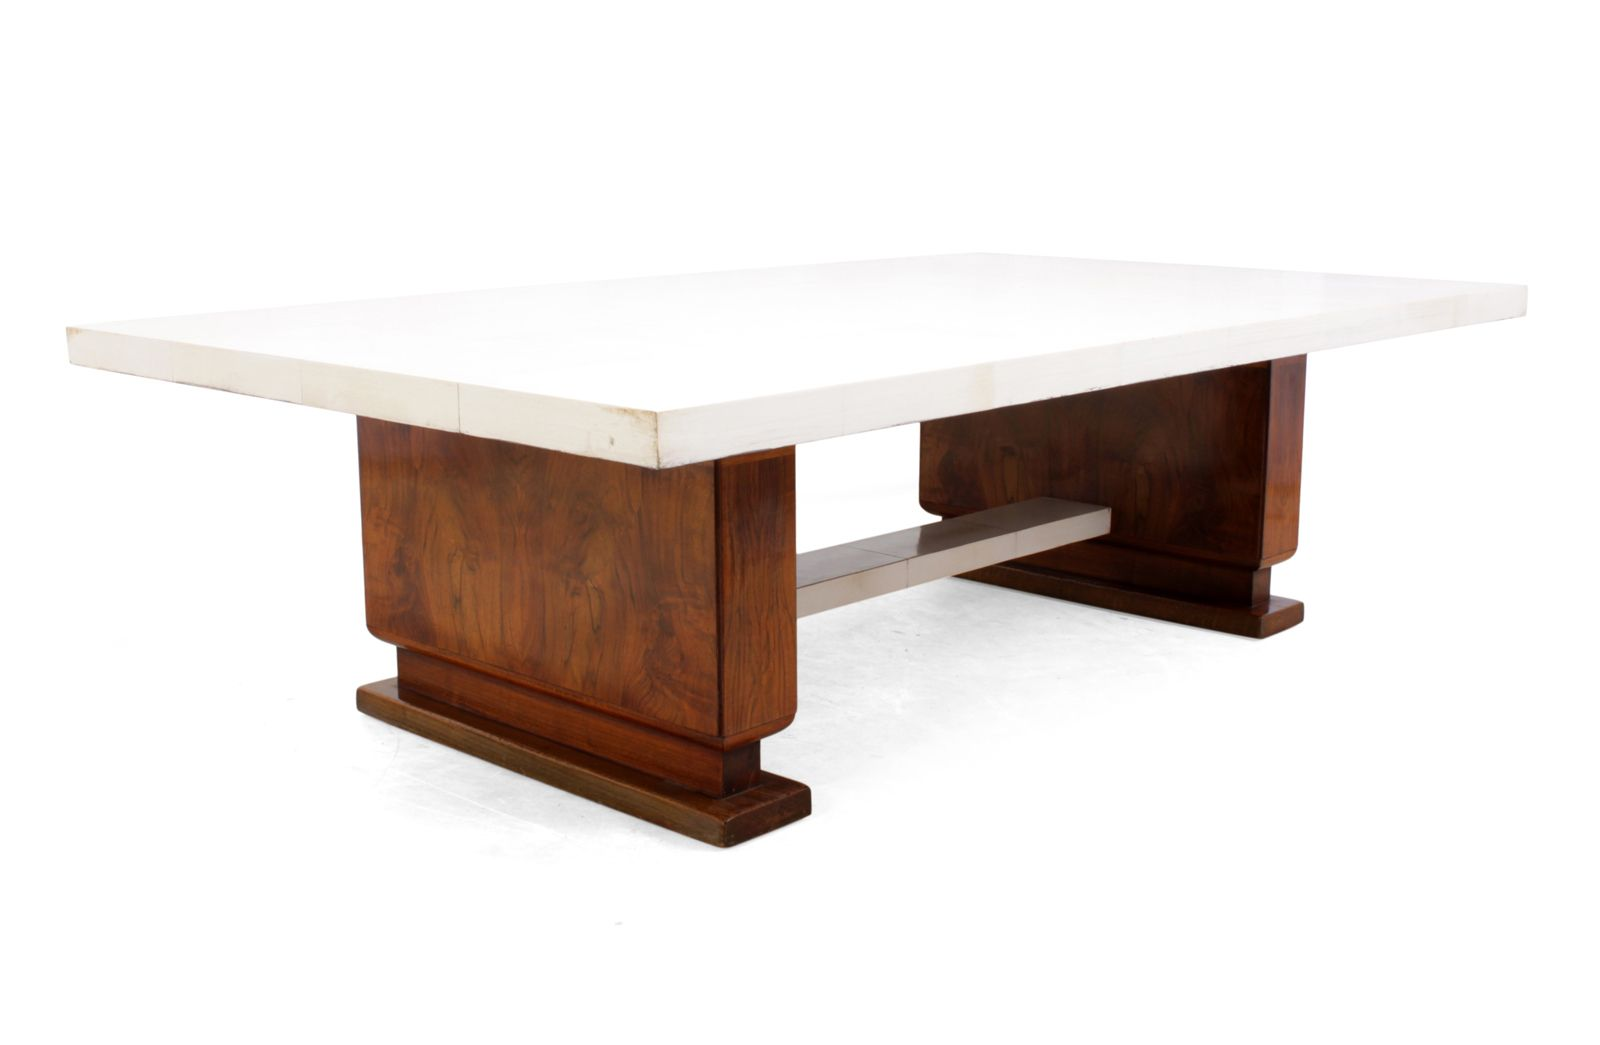 Art deco walnut parchment coffee table 1930s for sale for Miroir art deco 1930